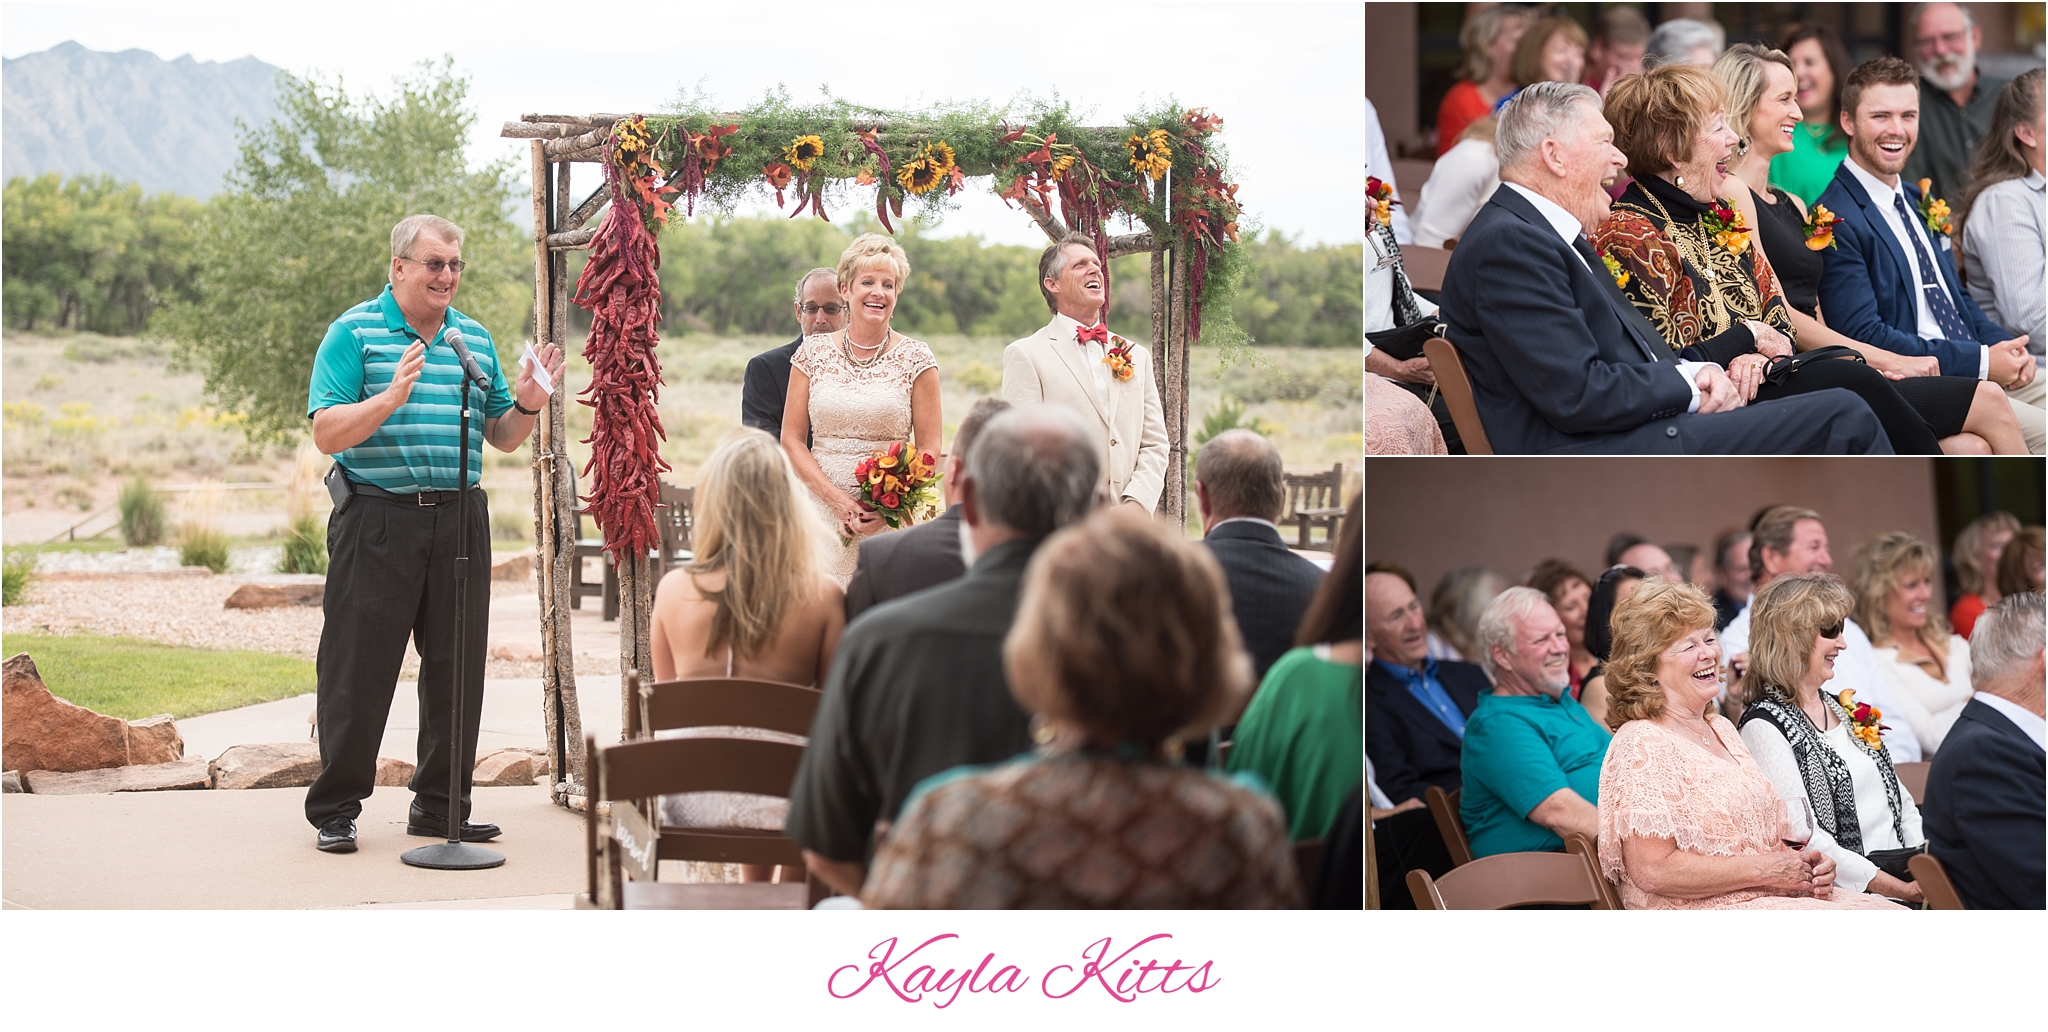 kayla kitts photography - albuquerque wedding photographer - albuquerque wedding photography - albuquerque venue - hyatt tamaya - hyatt tamaya wedding - new mexico wedding photographer_0044.jpg